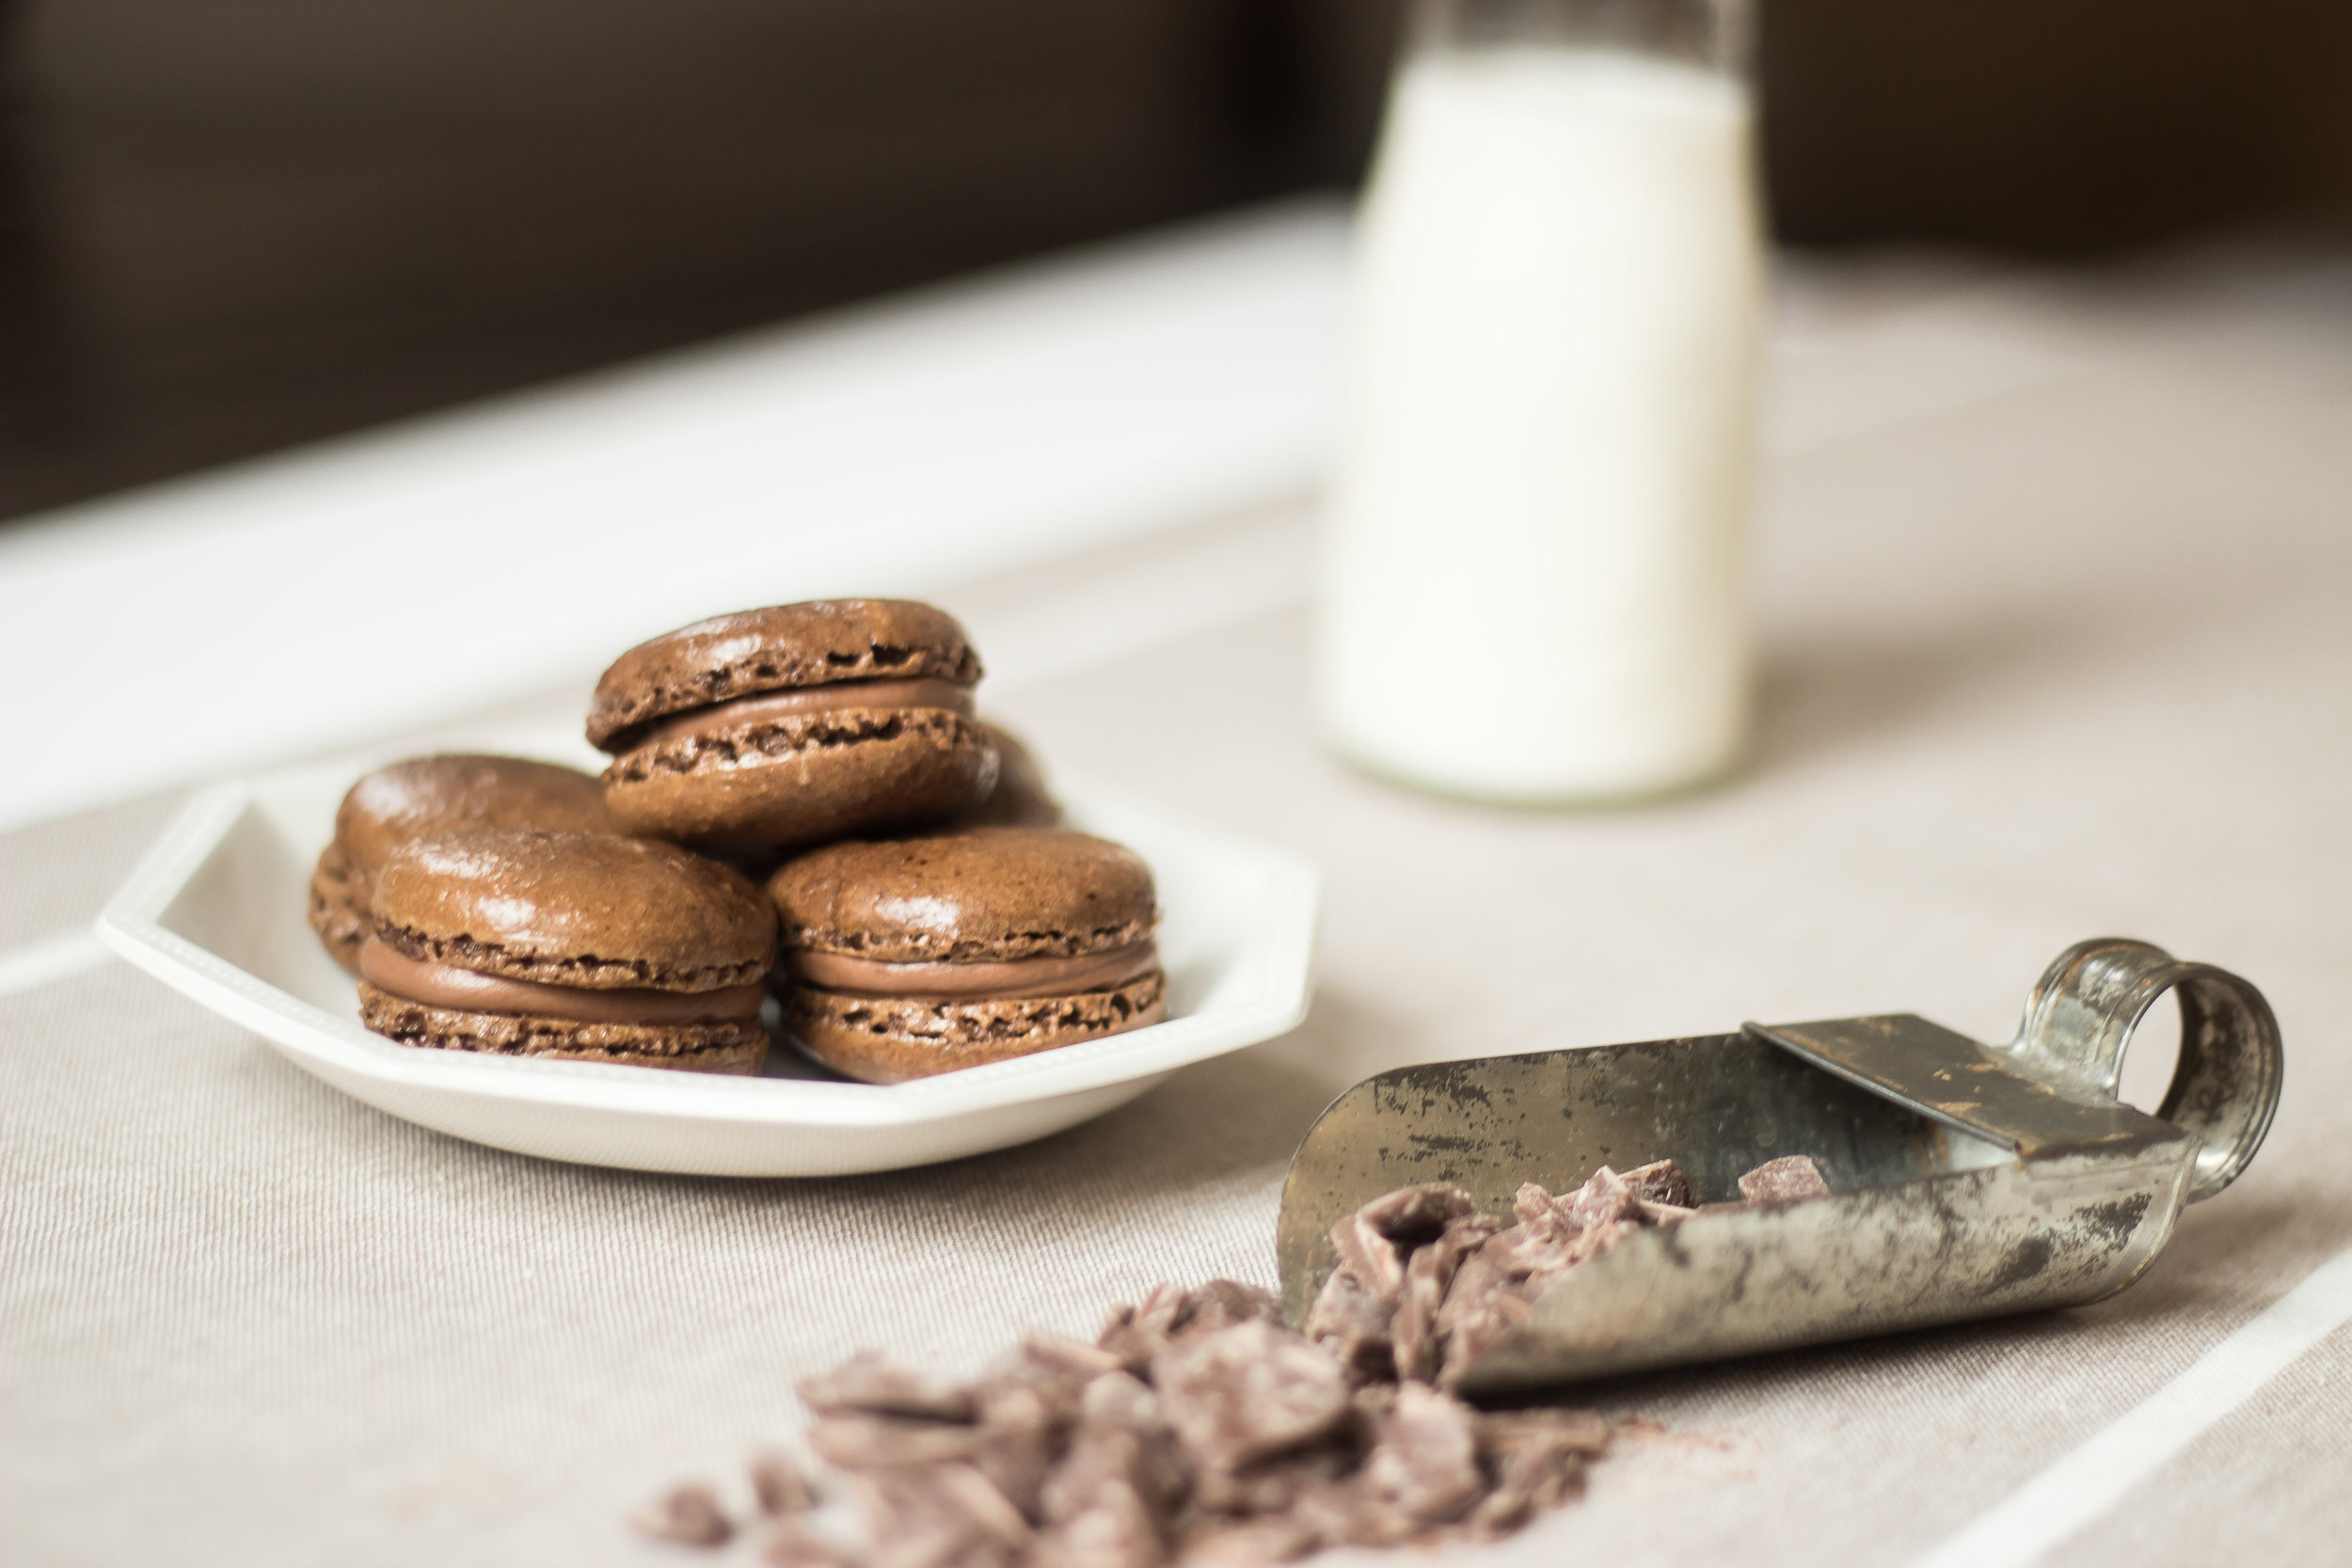 Mocha Macarons with Chocolate Hazelnut Ganache -